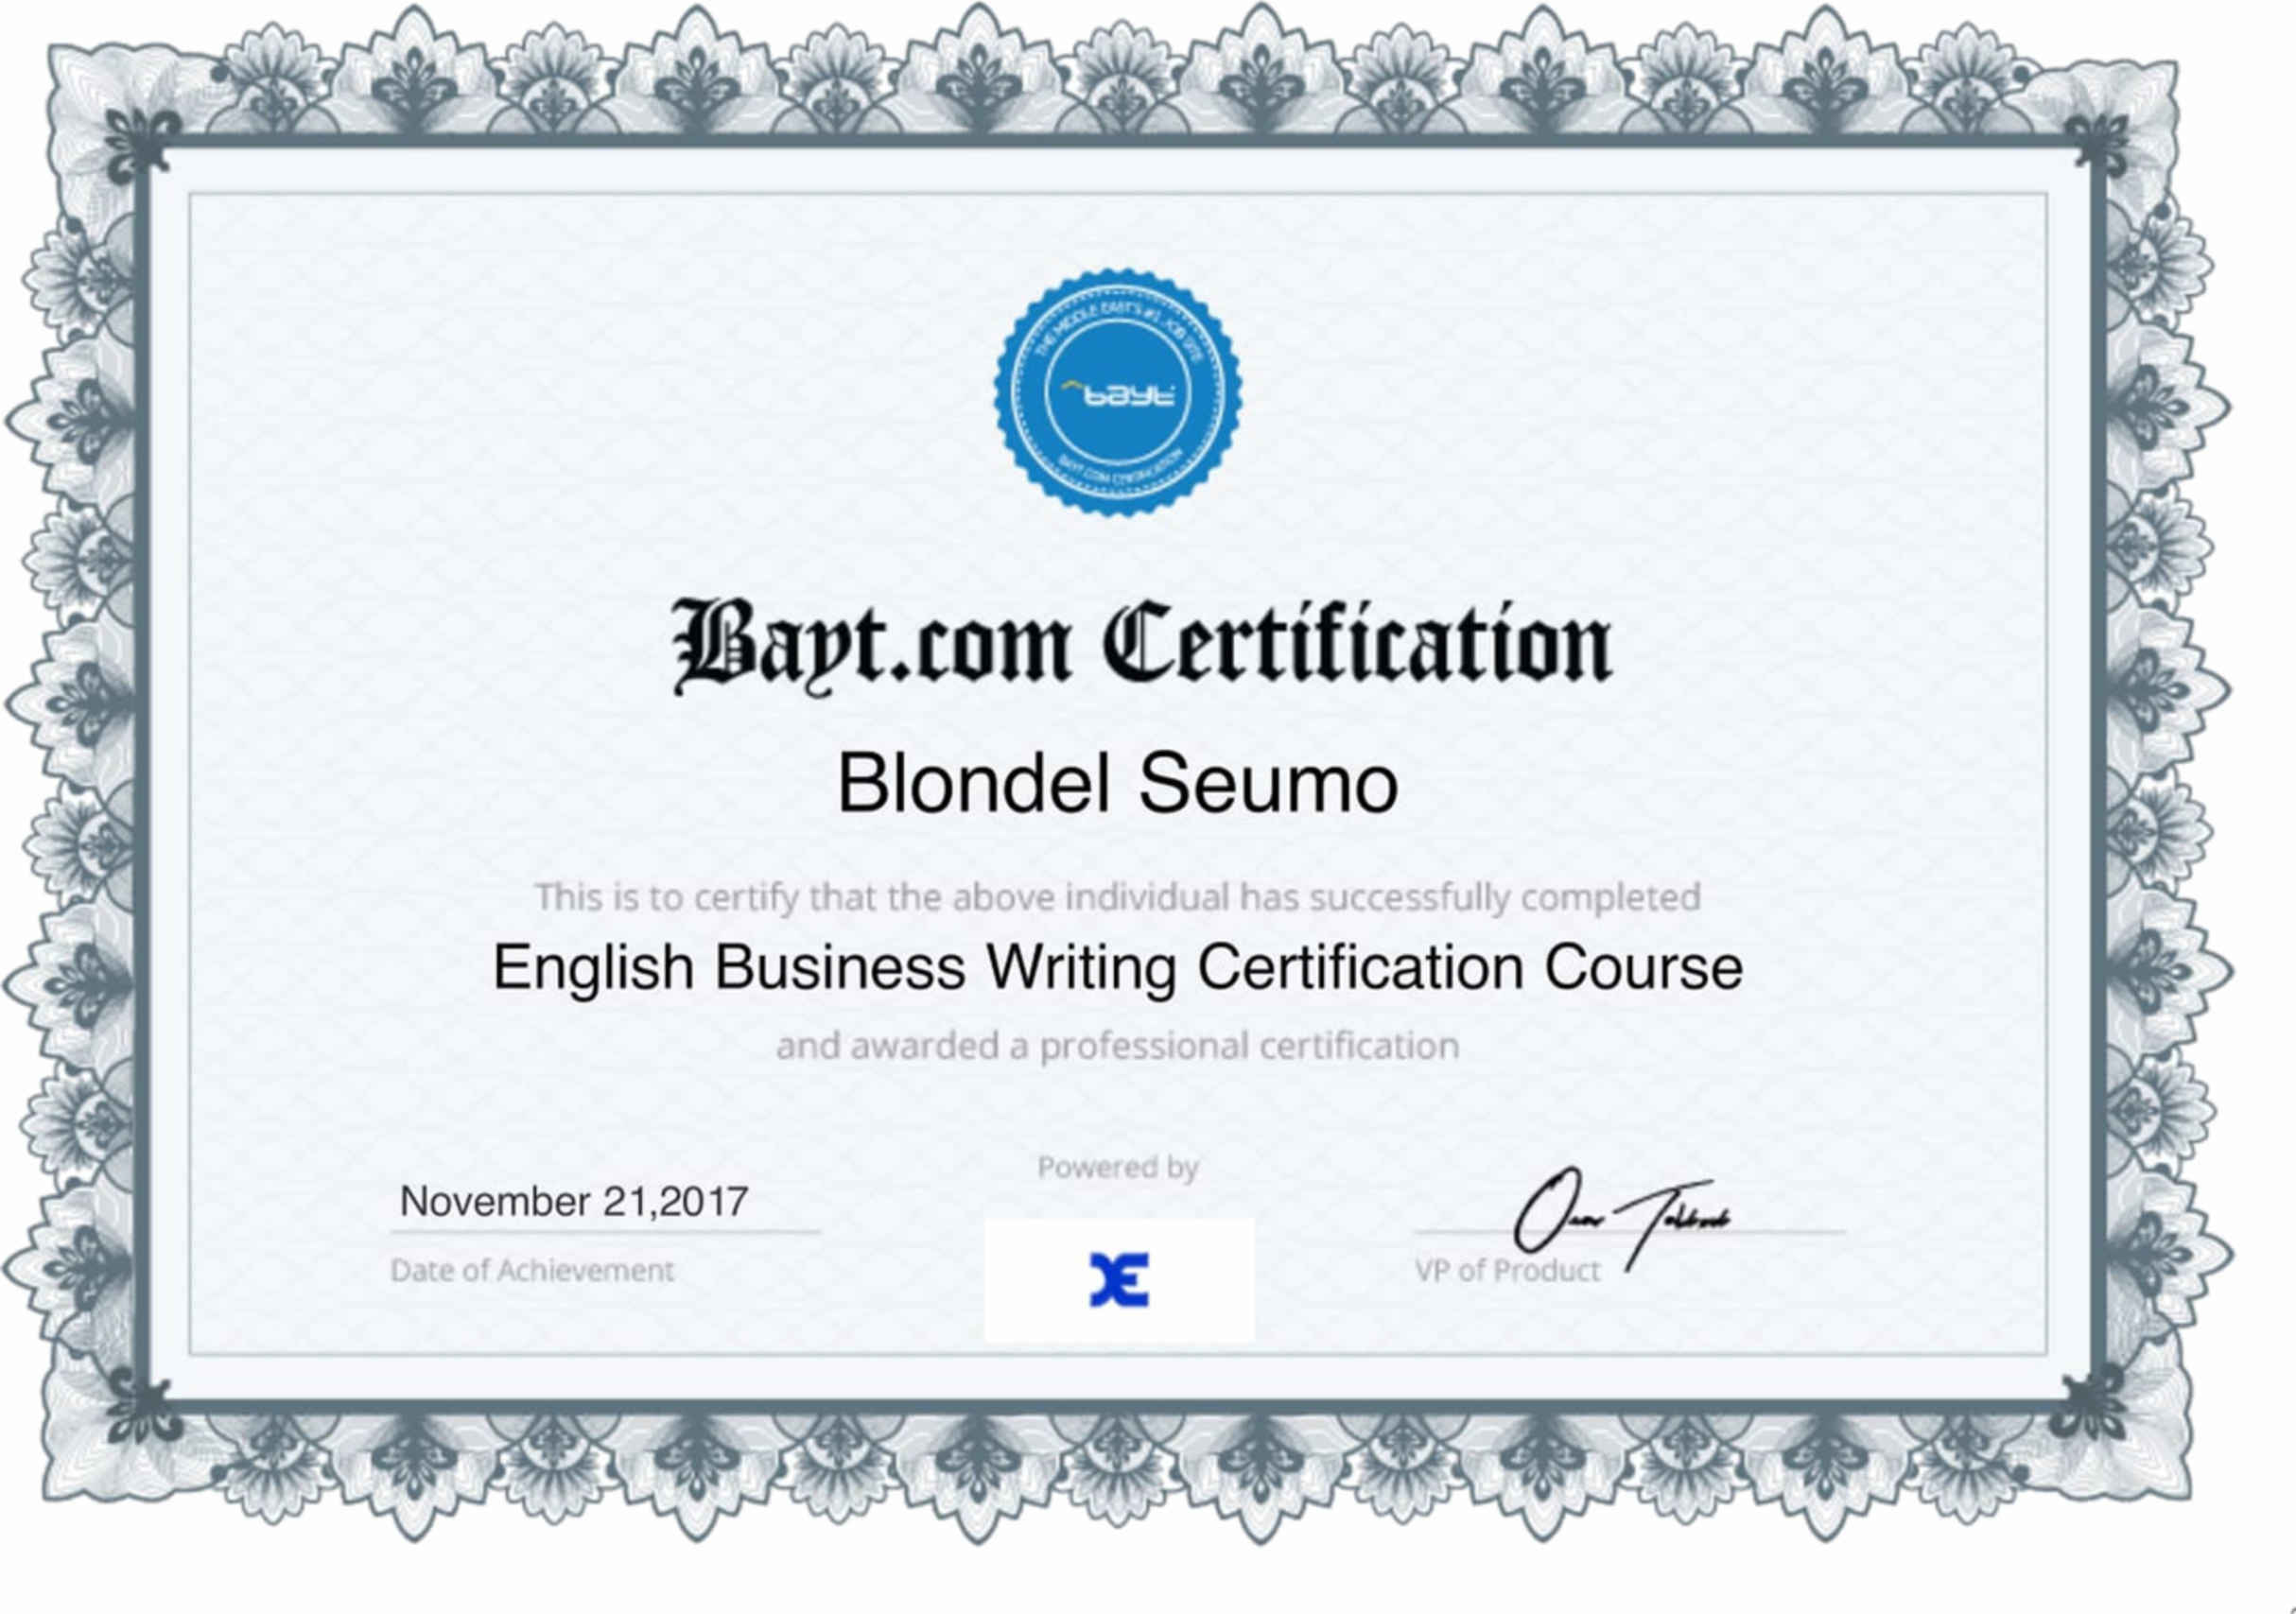 Blondel seumo bayt english business writing certification certificate 1betcityfo Gallery